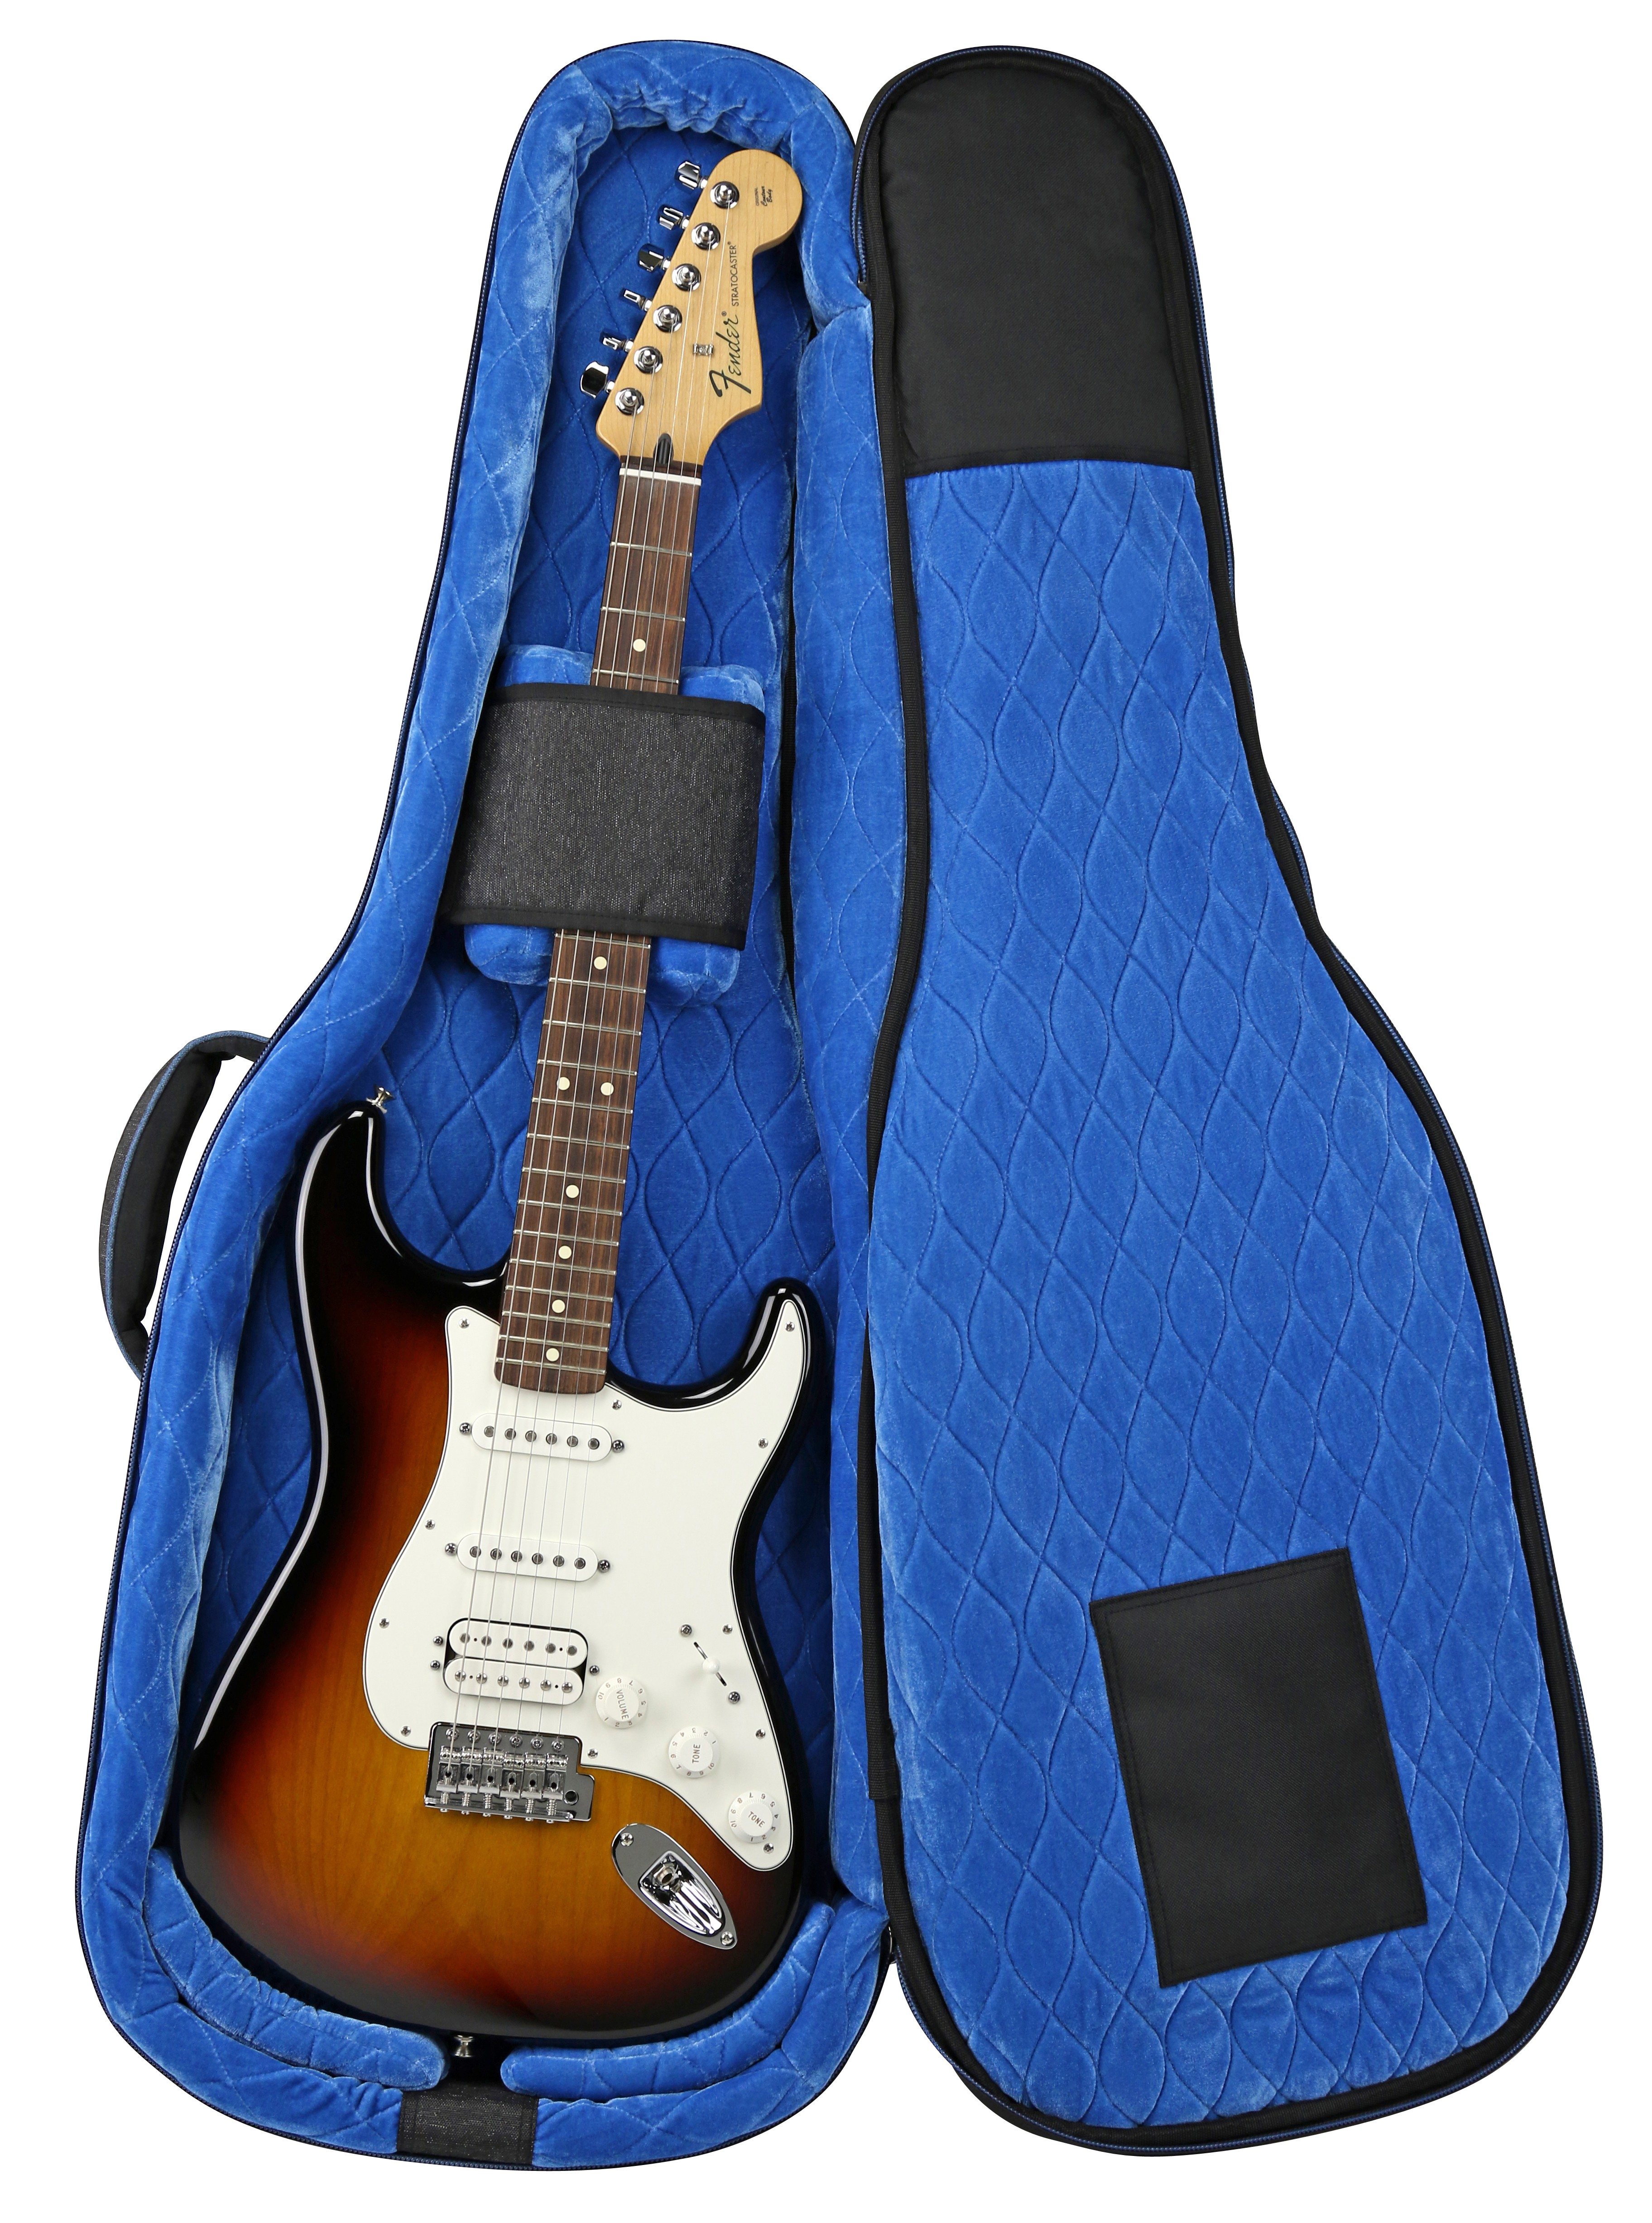 Rbc E1 Electric Guitar モリダイラ楽器